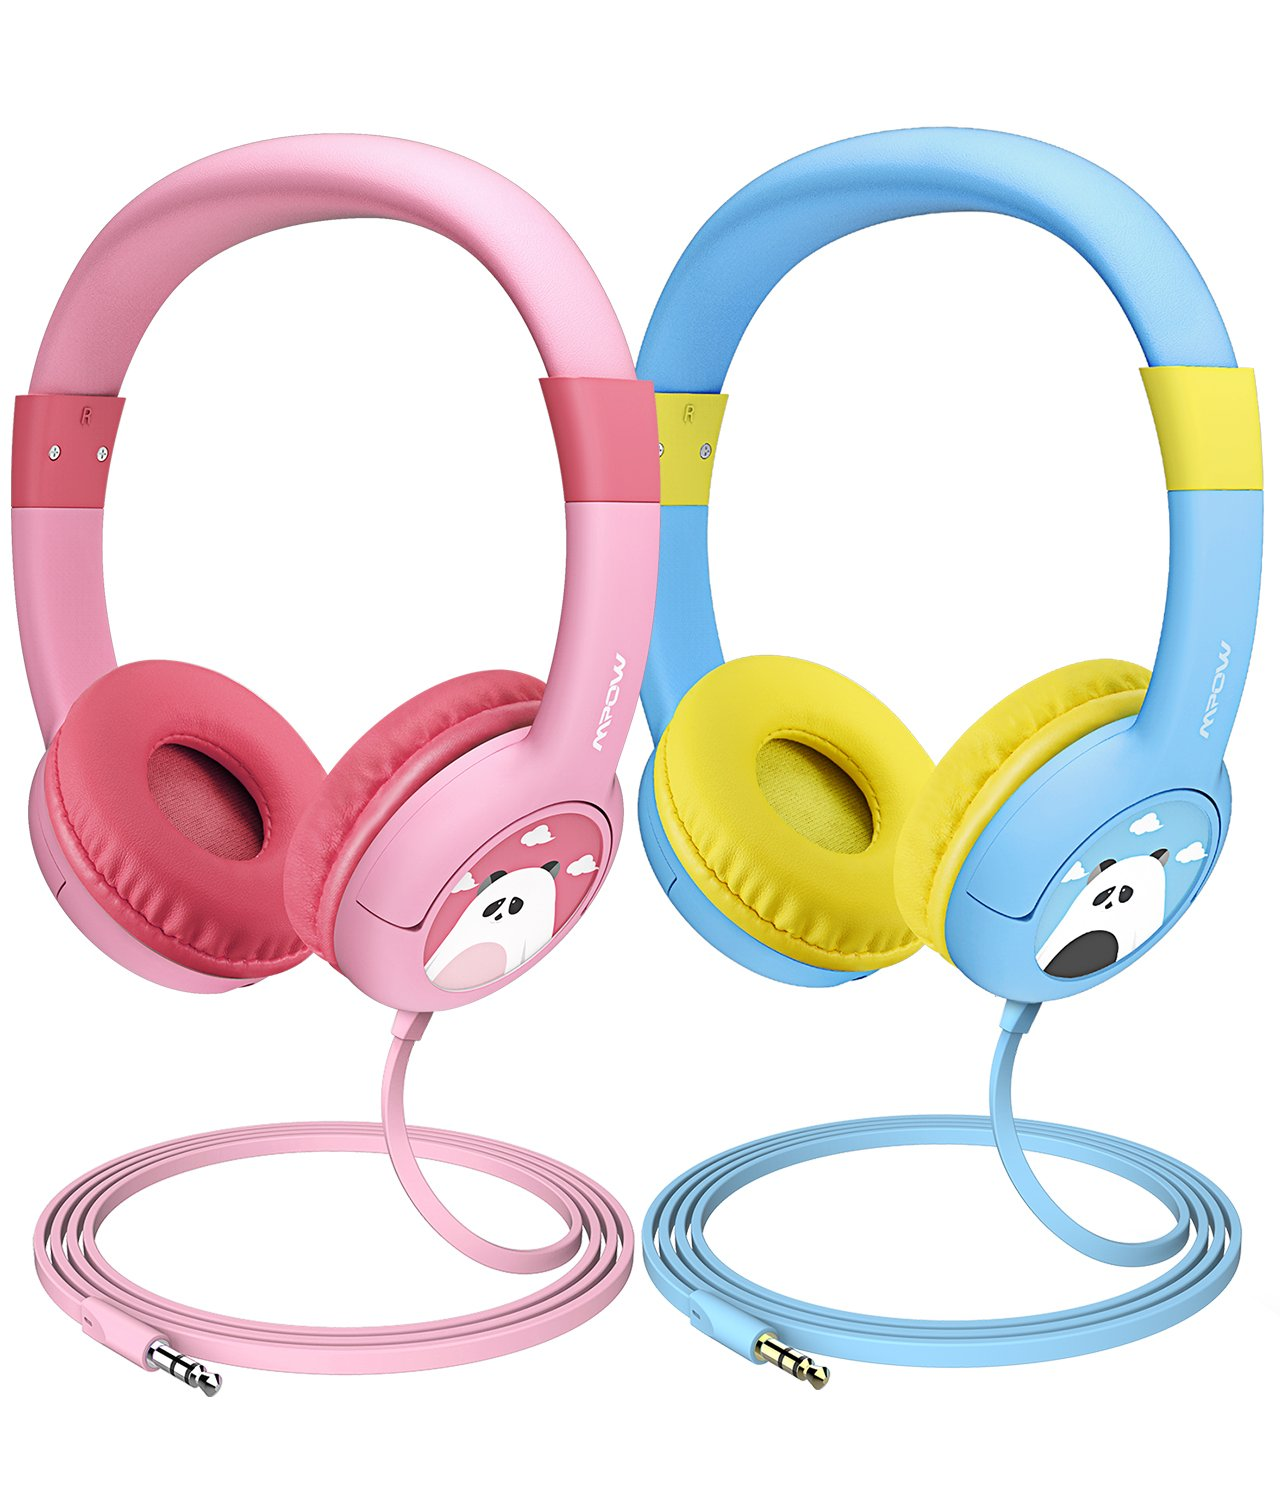 Mpow (2-Pack) Kids Headphones with 85dB Volume Limited Hearing Protection & Music Sharing Function, Kids Safe Food Grade Material, Tangle-Free Cord, Wired On-Ear Headphones for Children Toddler Baby by Mpow